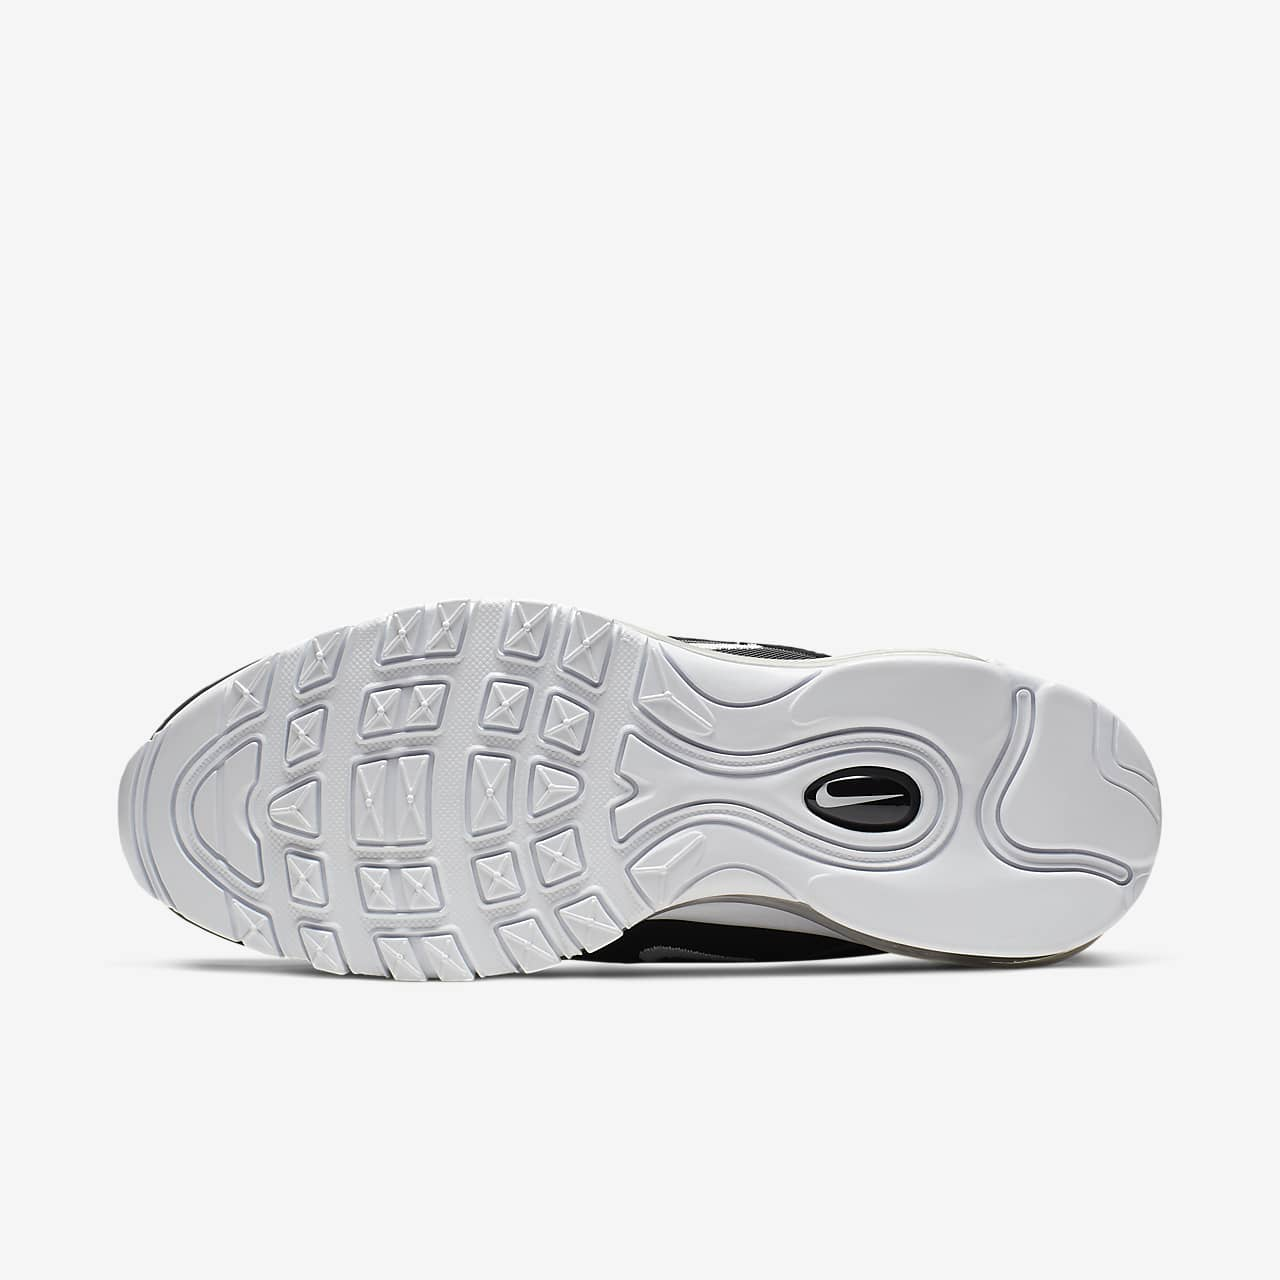 Nike Air Max 97 CR7 The Latest VaporMax, Jordan, Cortez, Air Max